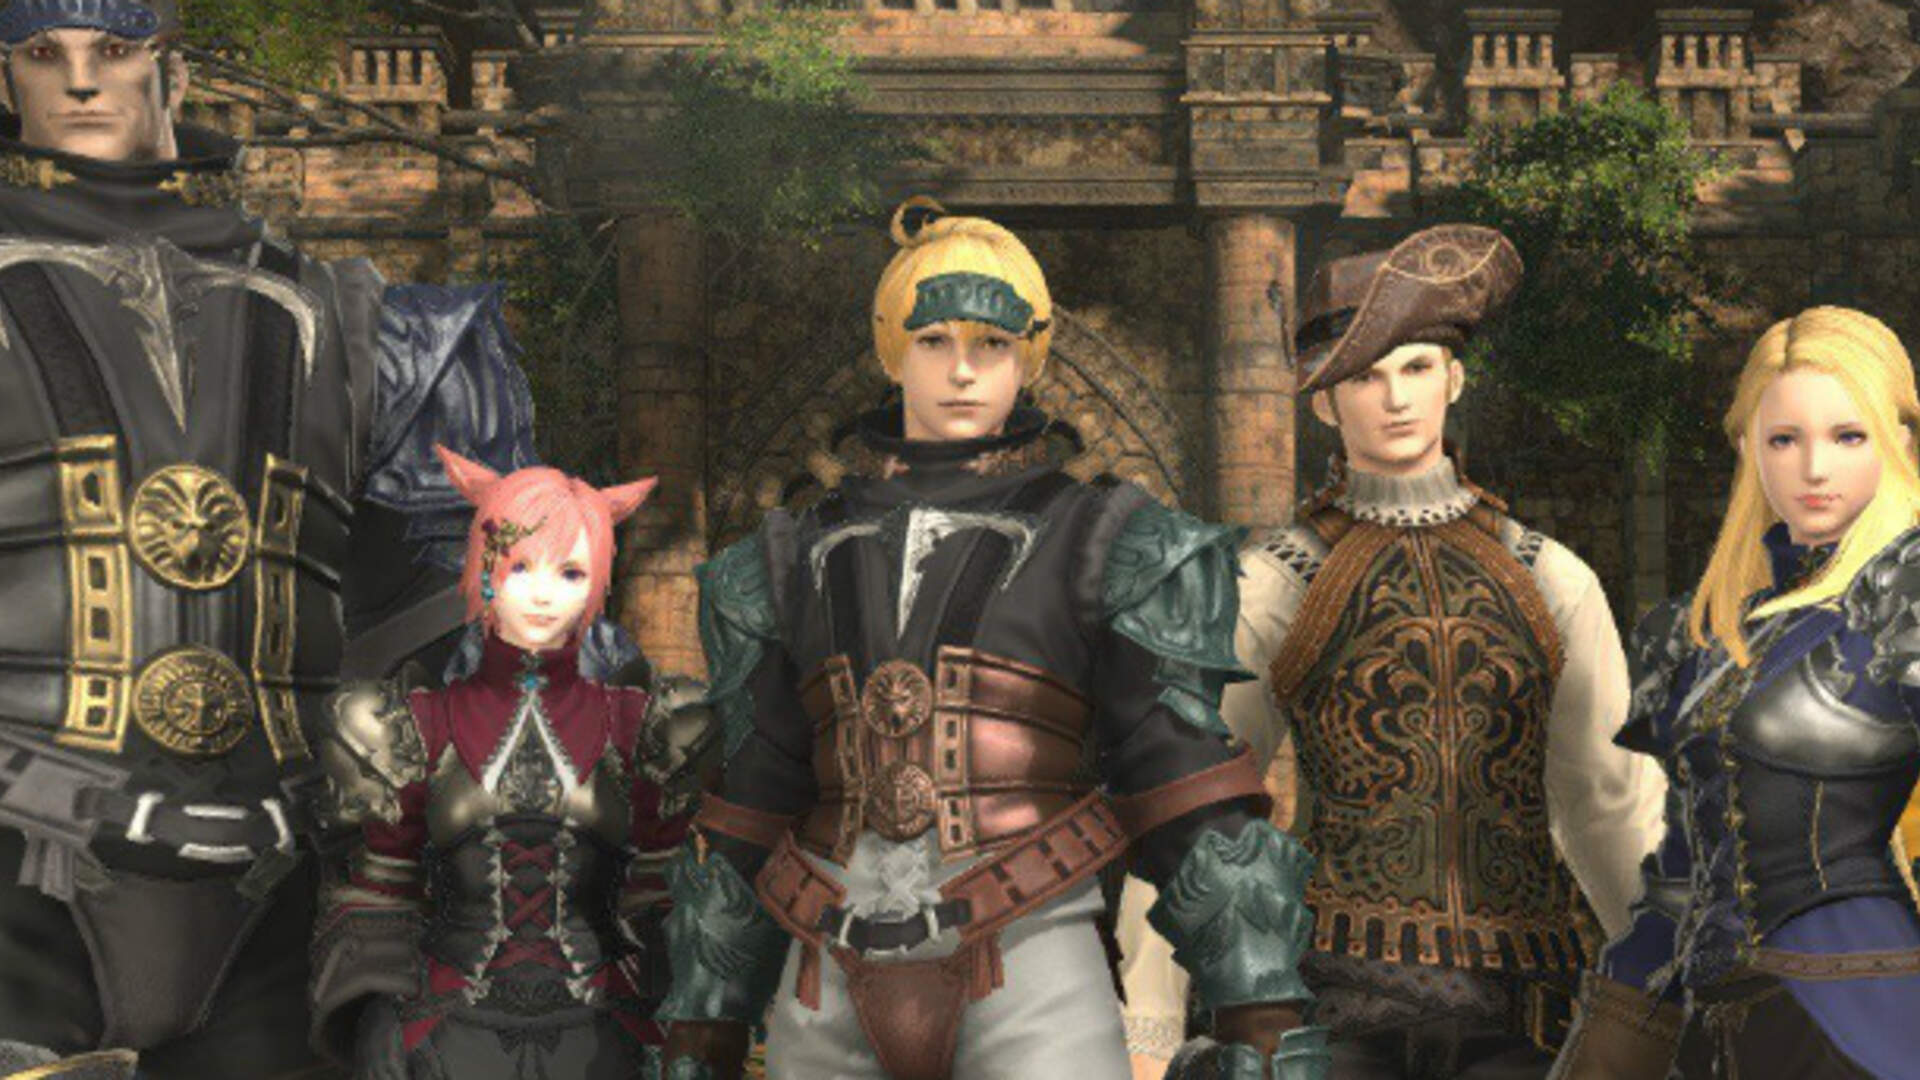 Final Fantasy 14 Patch 4.5 Brings An Old Friend Back to Ivalice